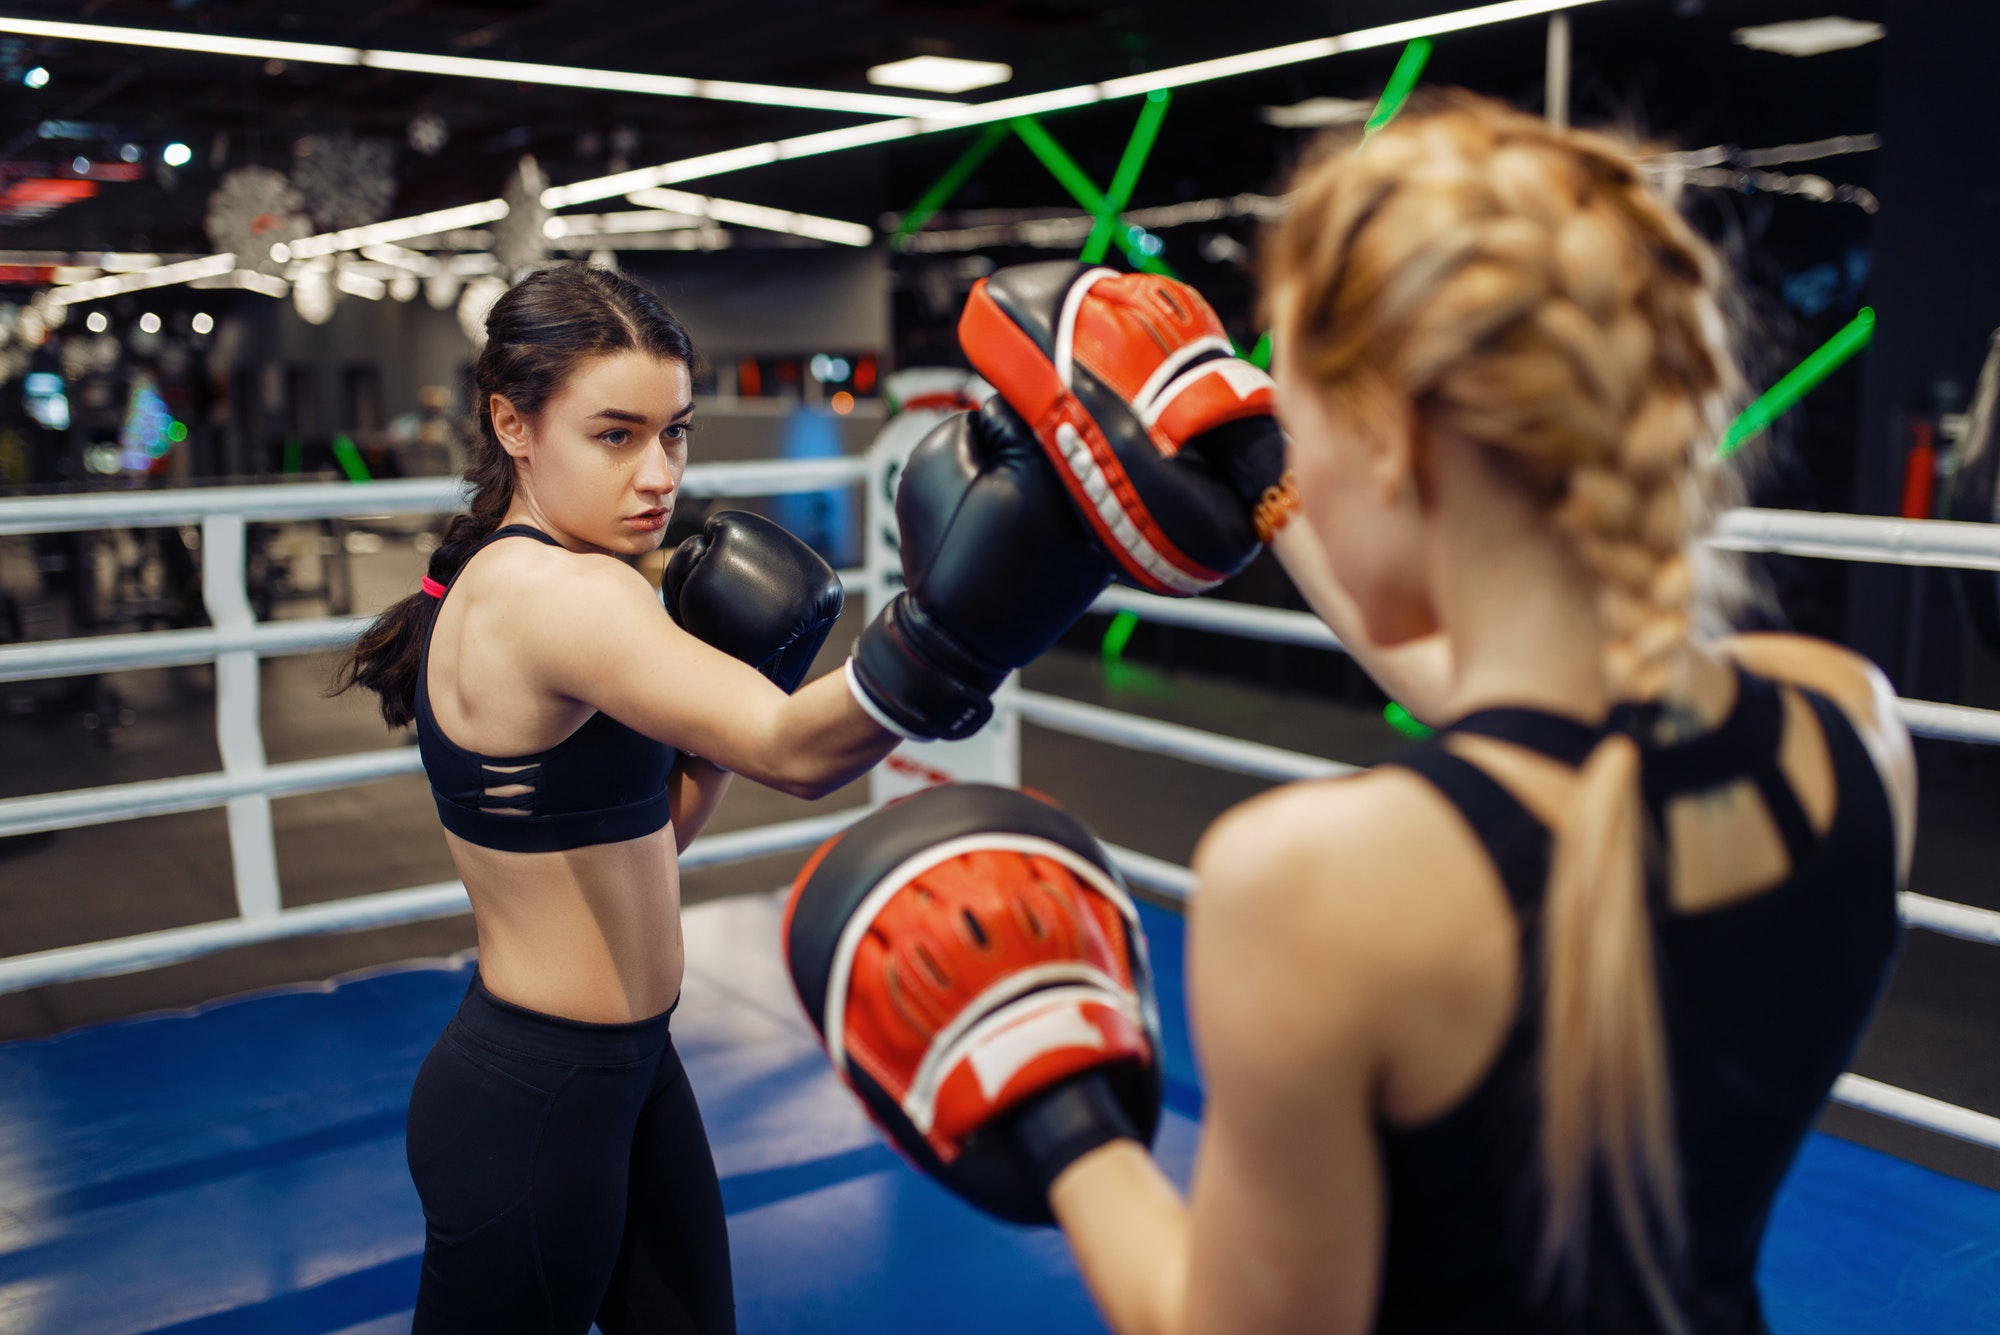 two-women-boxing-in-the-ring-box-training.jpg